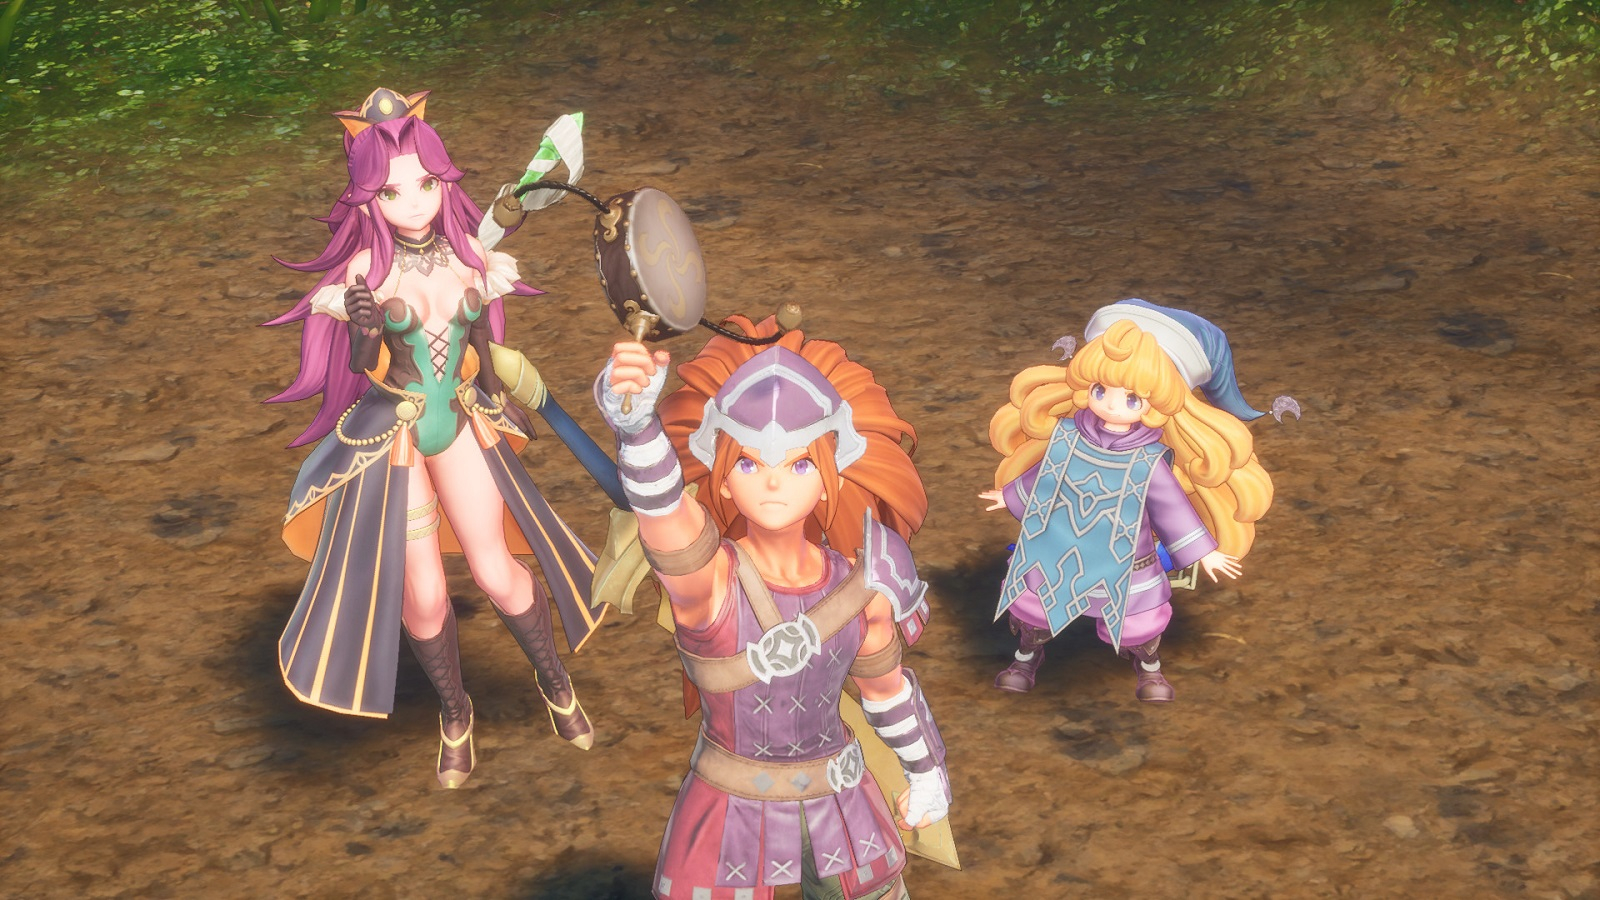 Steam-версия Trials of Mana временно лишилась демоверсии  пираты использовали её для доступа к полной игре